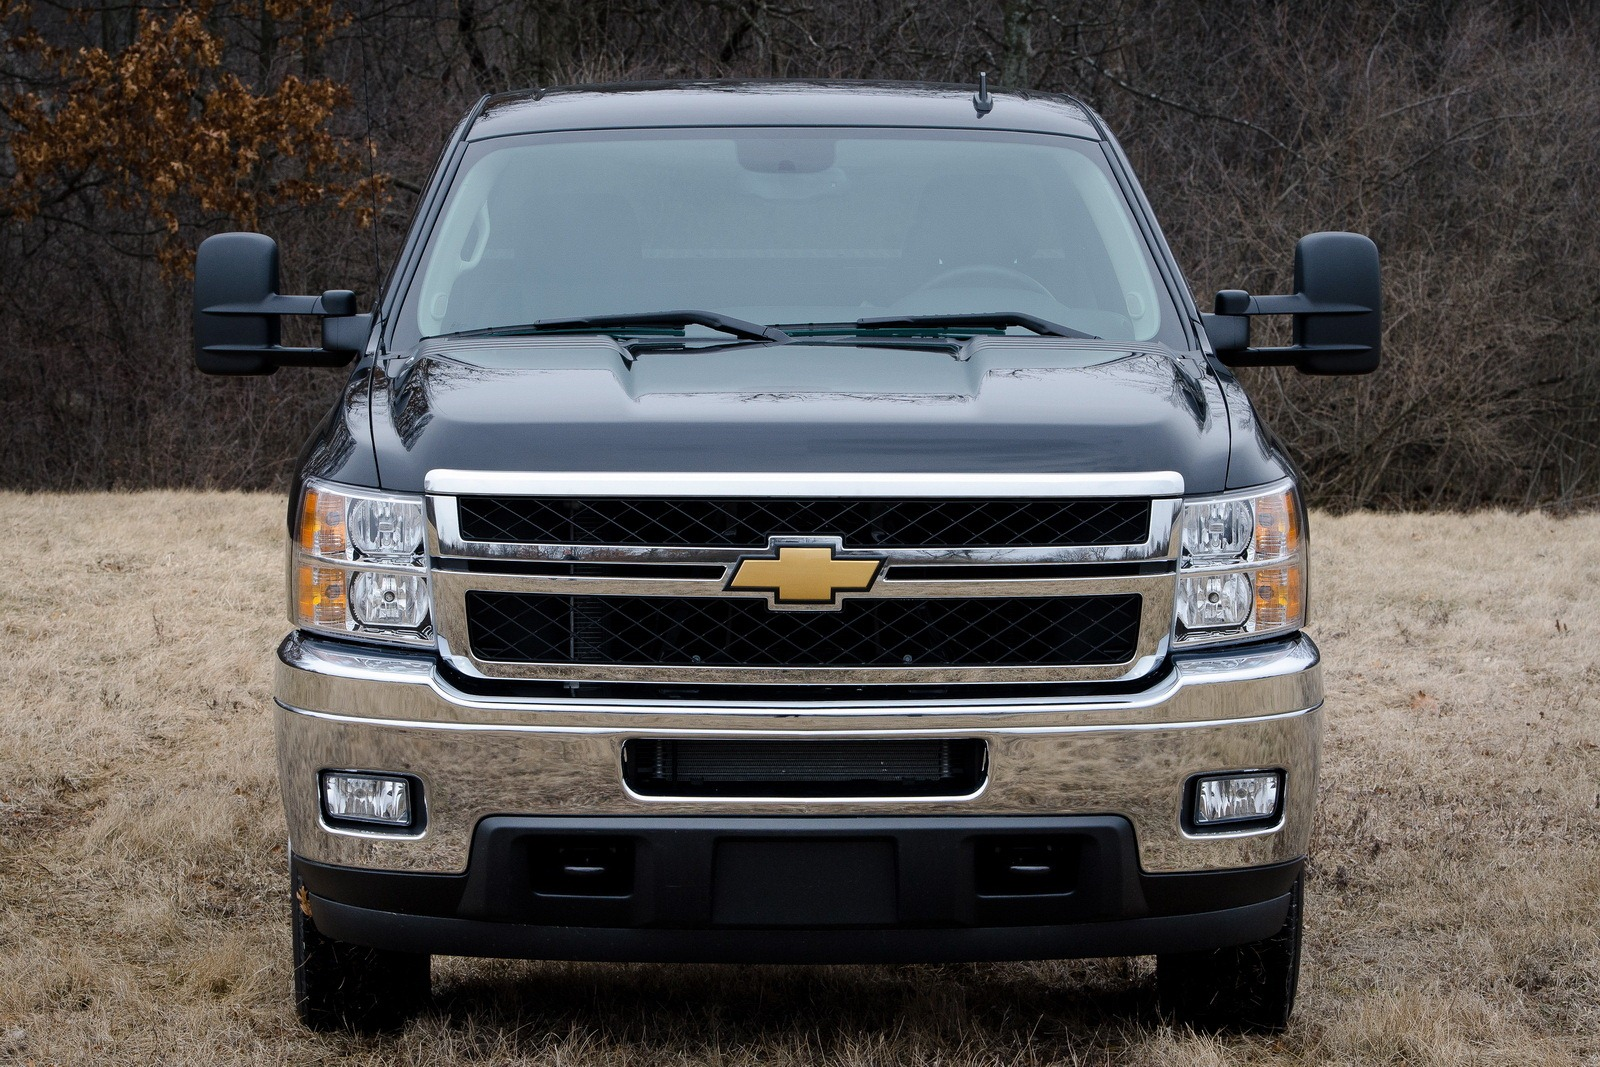 2013 Chevrolet Silverado and GMC Sierra Trucks 1 2013 Chevrolet Silverado and GMC Sierra Trucks with Vortec V8 Powertrains